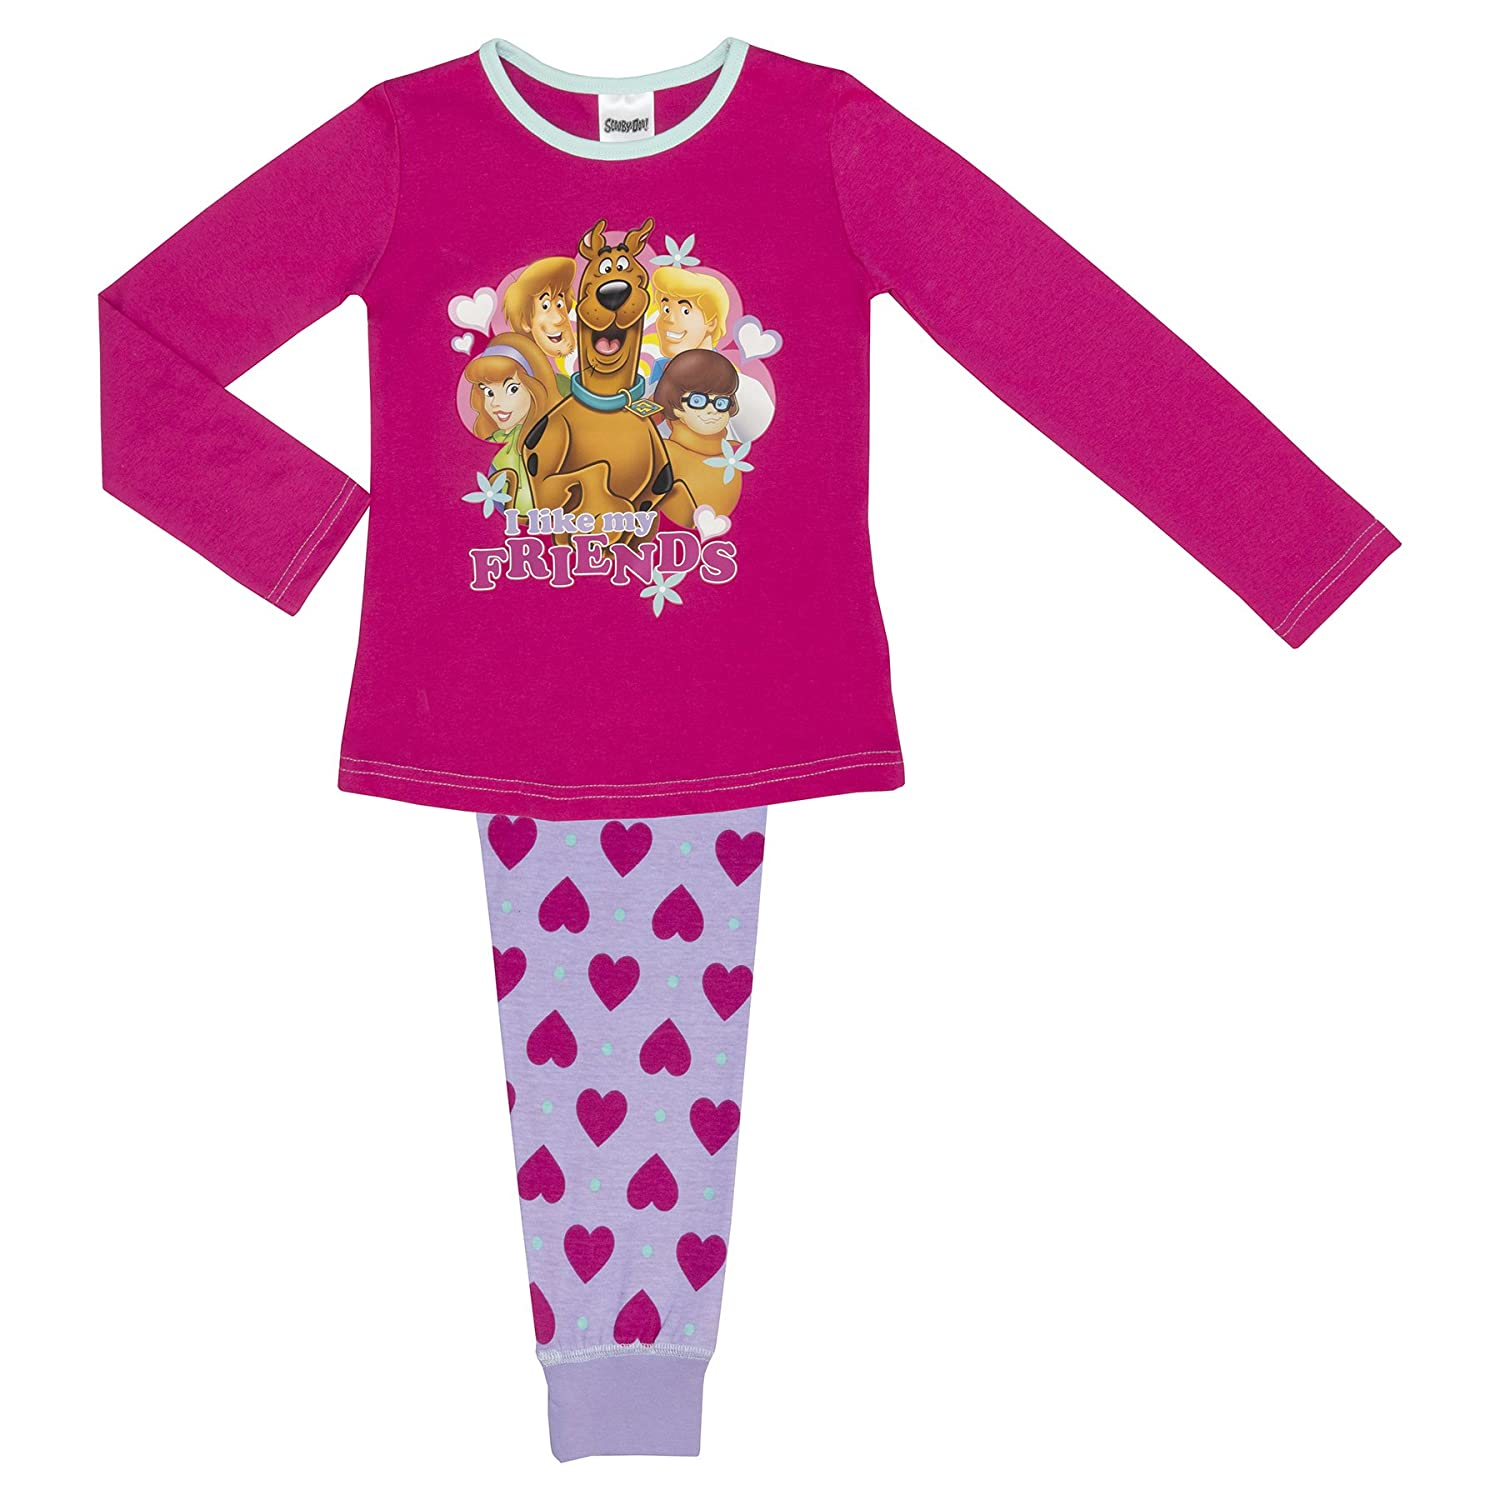 6b27909fa1 Cartoon Character Products Warner Brothers Scooby Doo Girls Pyjamas - Age  3-10 Years - 9-10 Years Pink Lilac  Amazon.ca  Clothing   Accessories